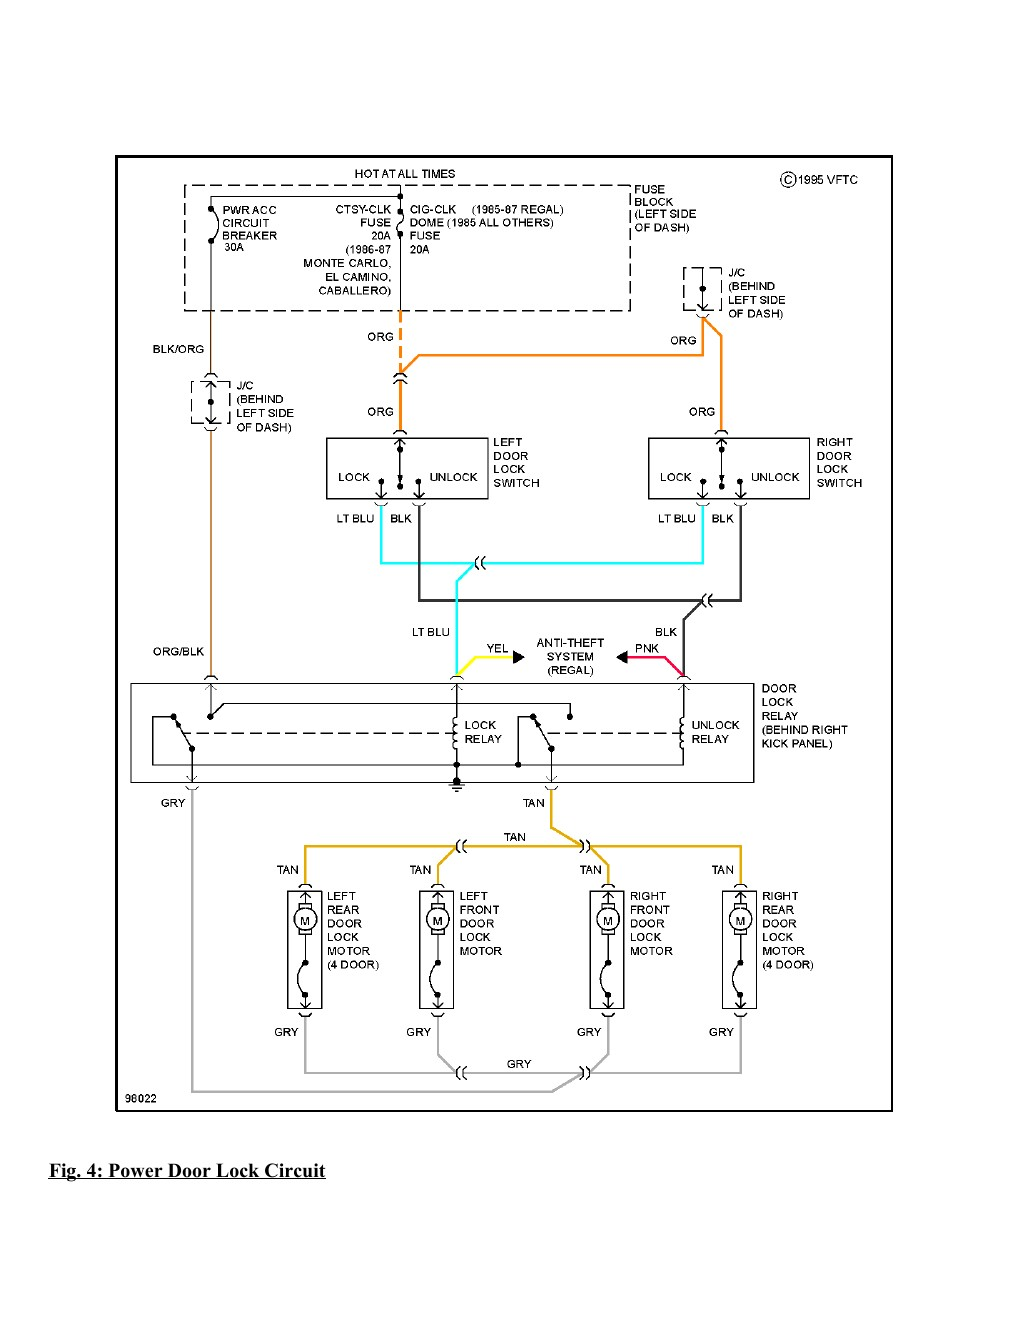 DIAGRAM] Ac Wiring Diagram 1995 Monte Carlo FULL Version HD Quality Monte  Carlo - DISHWIRING.COGITO-EXPO.FRCogito Expo